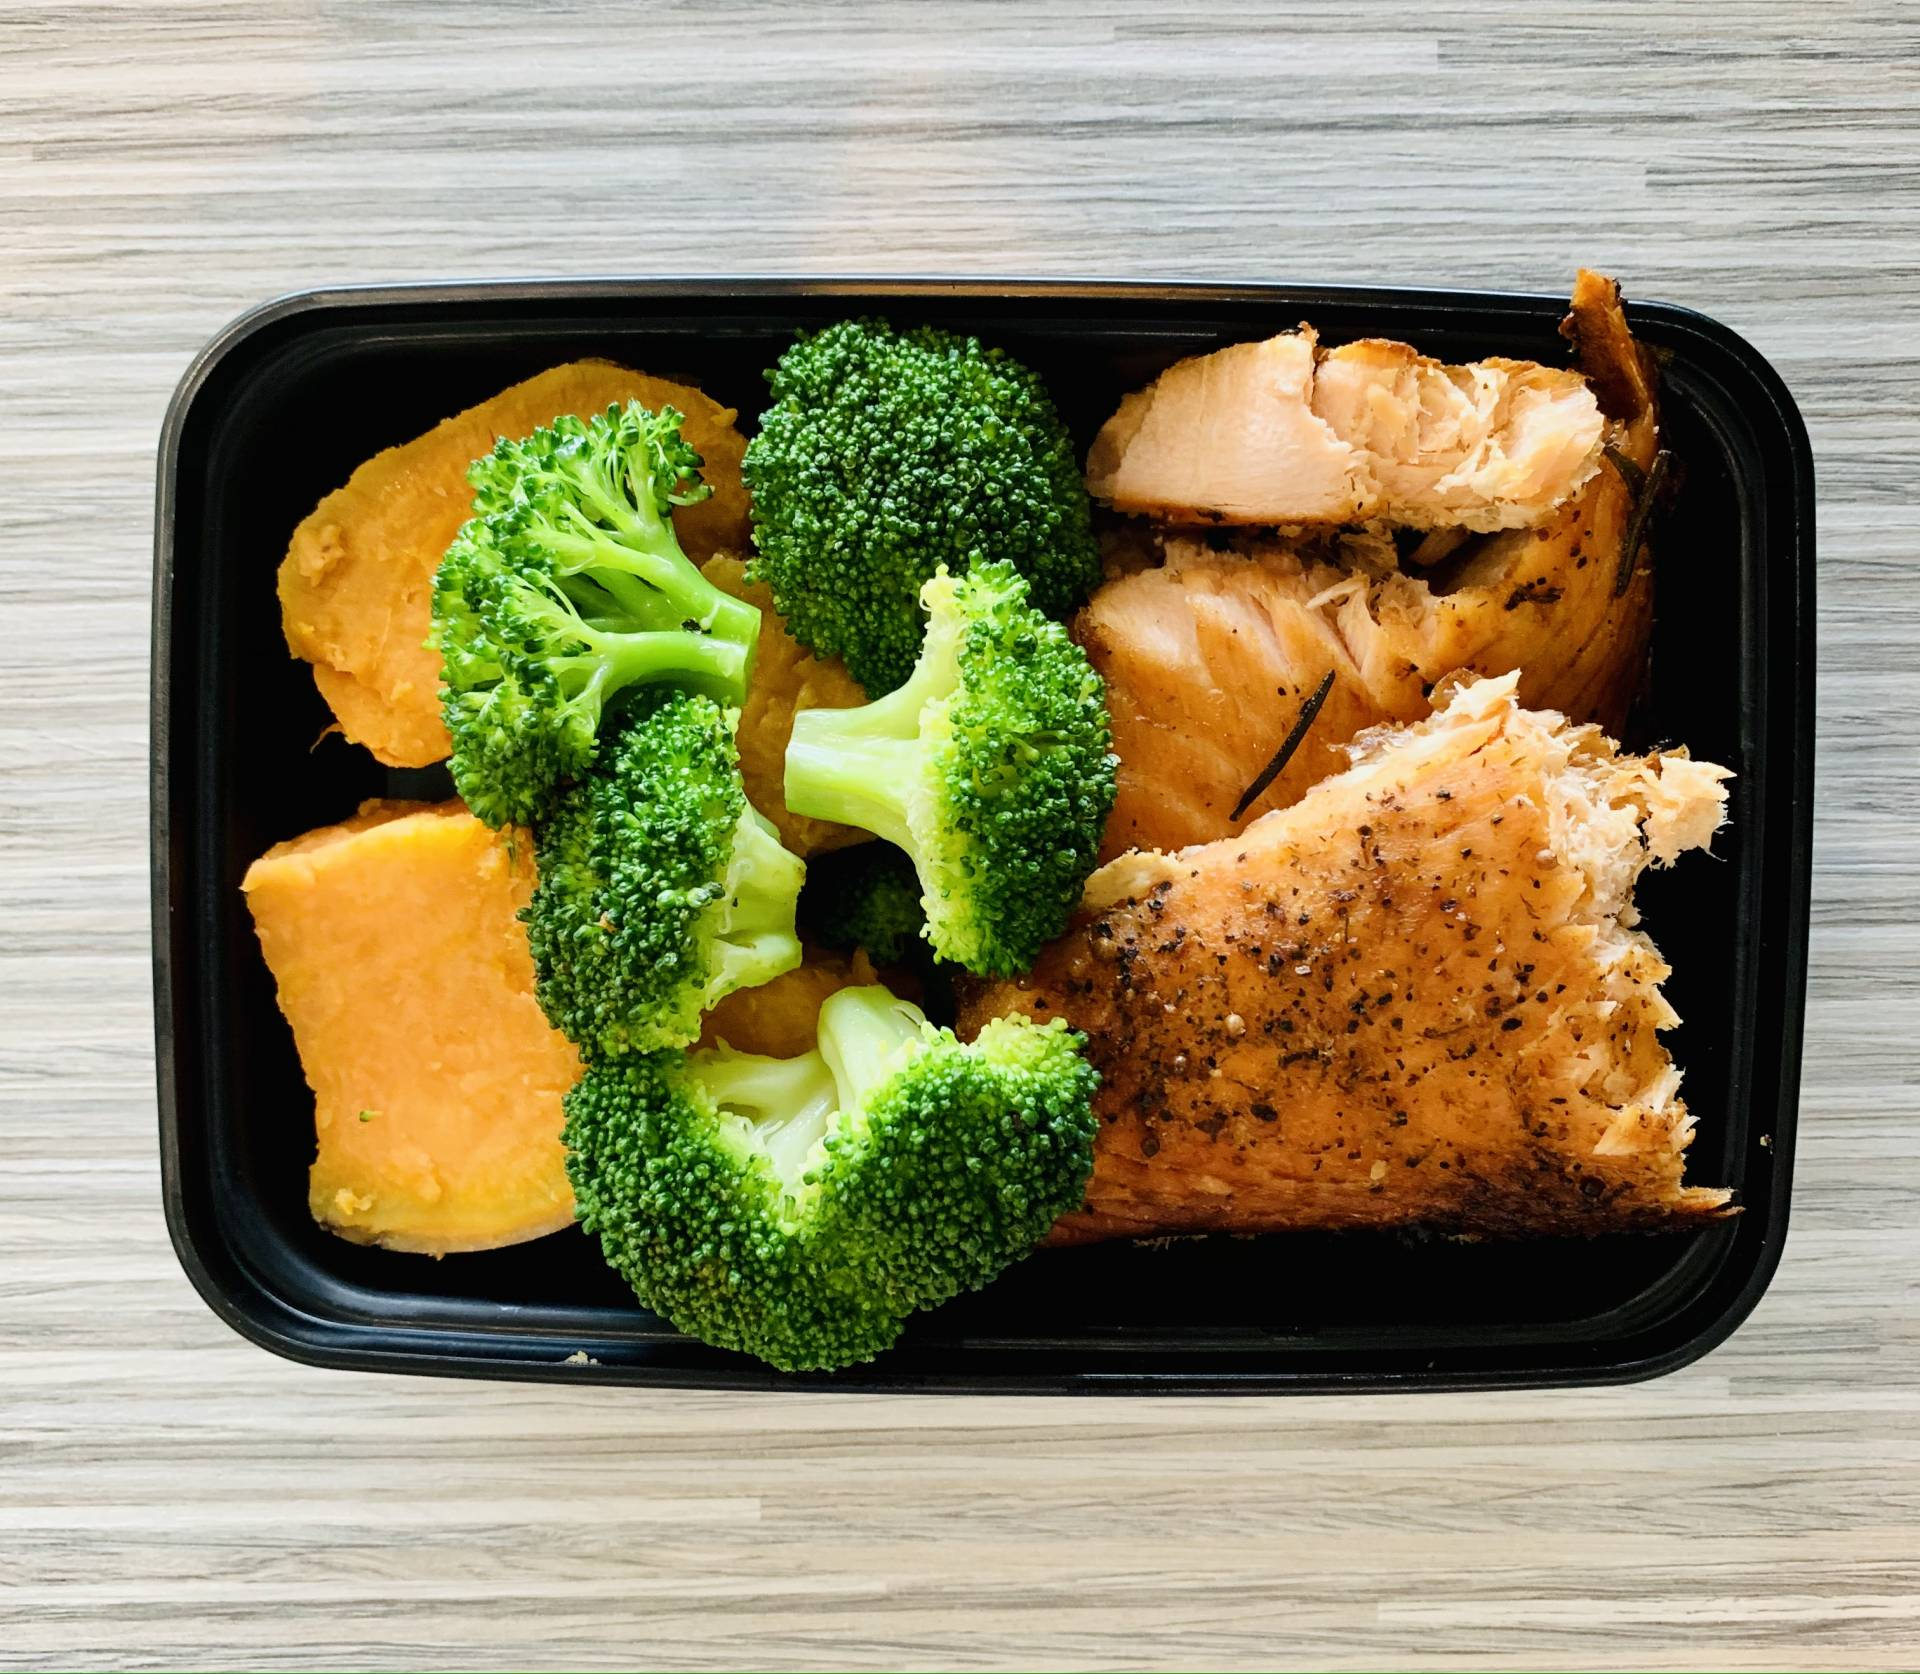 Atlantic Salmon, Sweet Potato and Broccoli